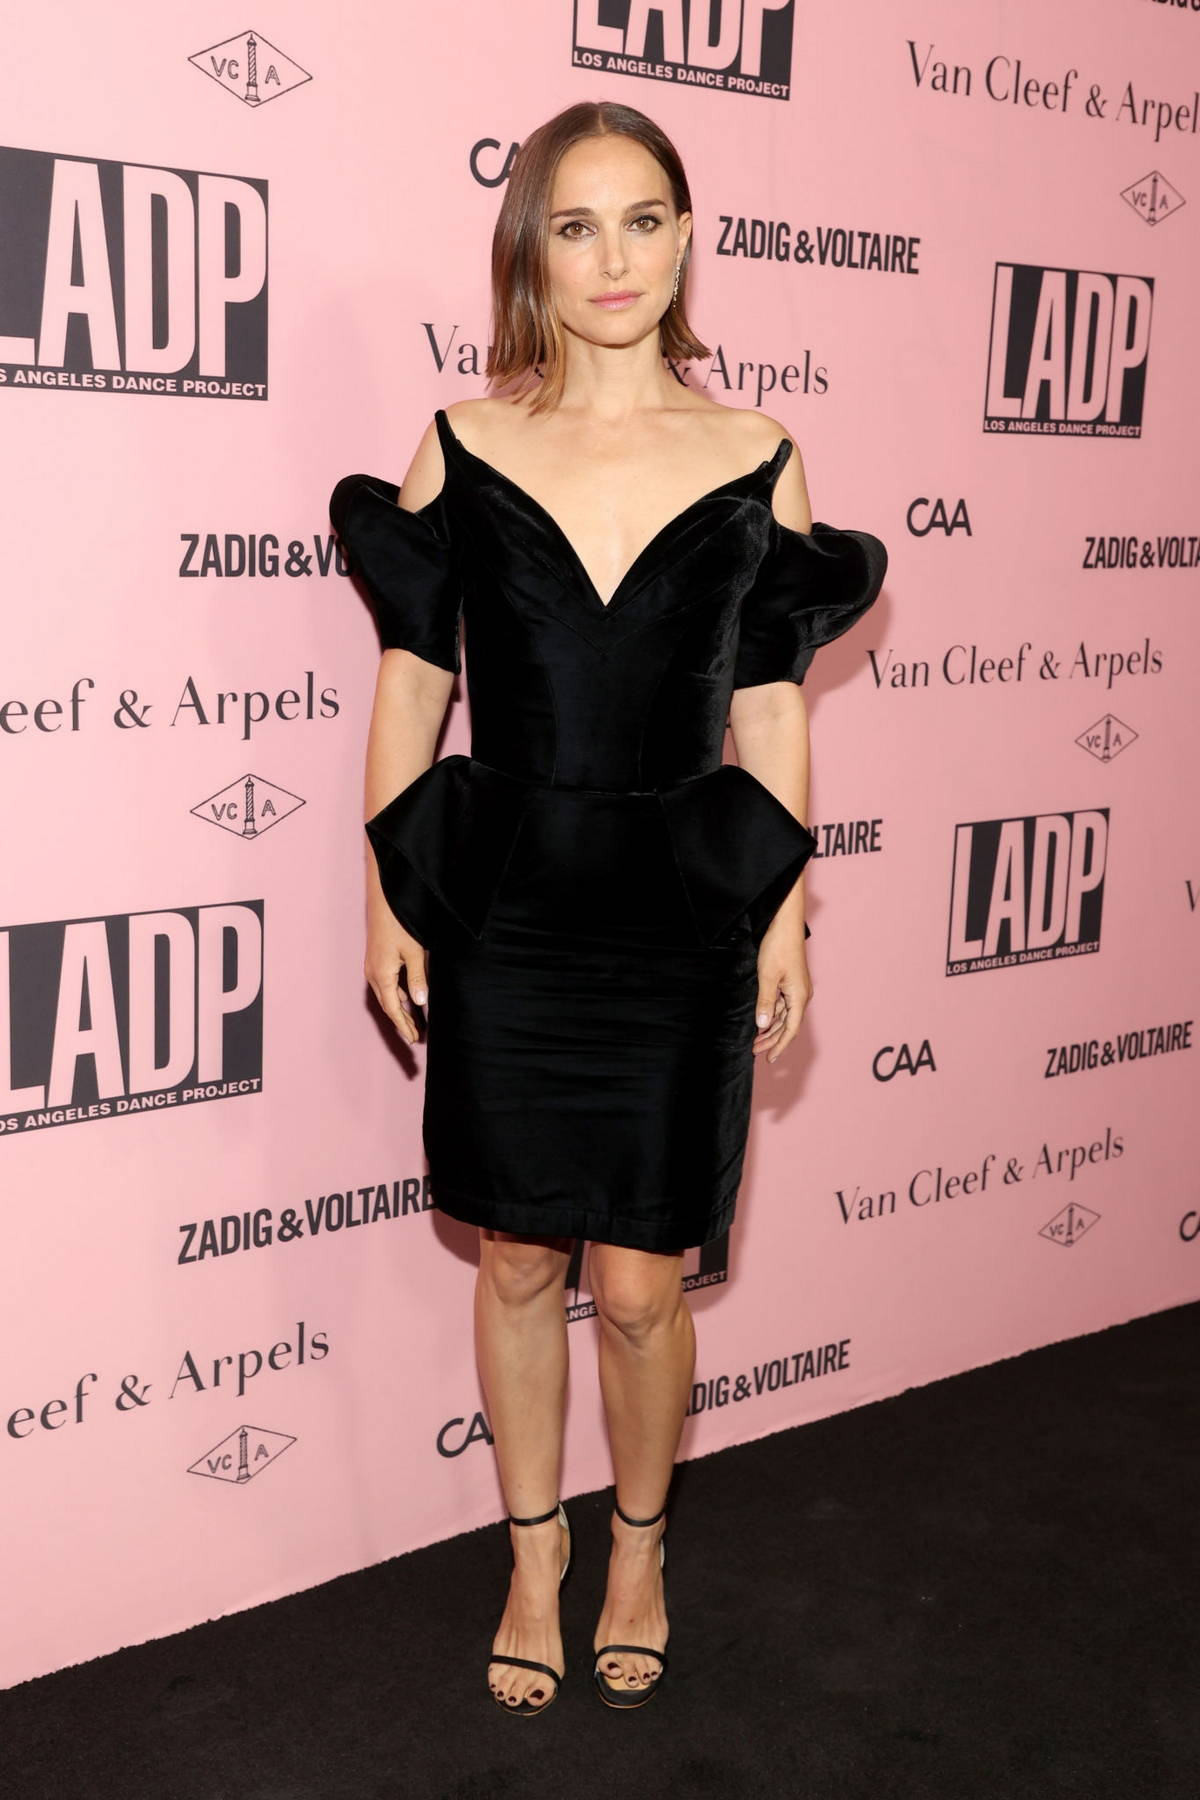 Natalie Portman attends the Unforgettable Evening Under The Stars to Benefit LA Dance Project in Los Angeles